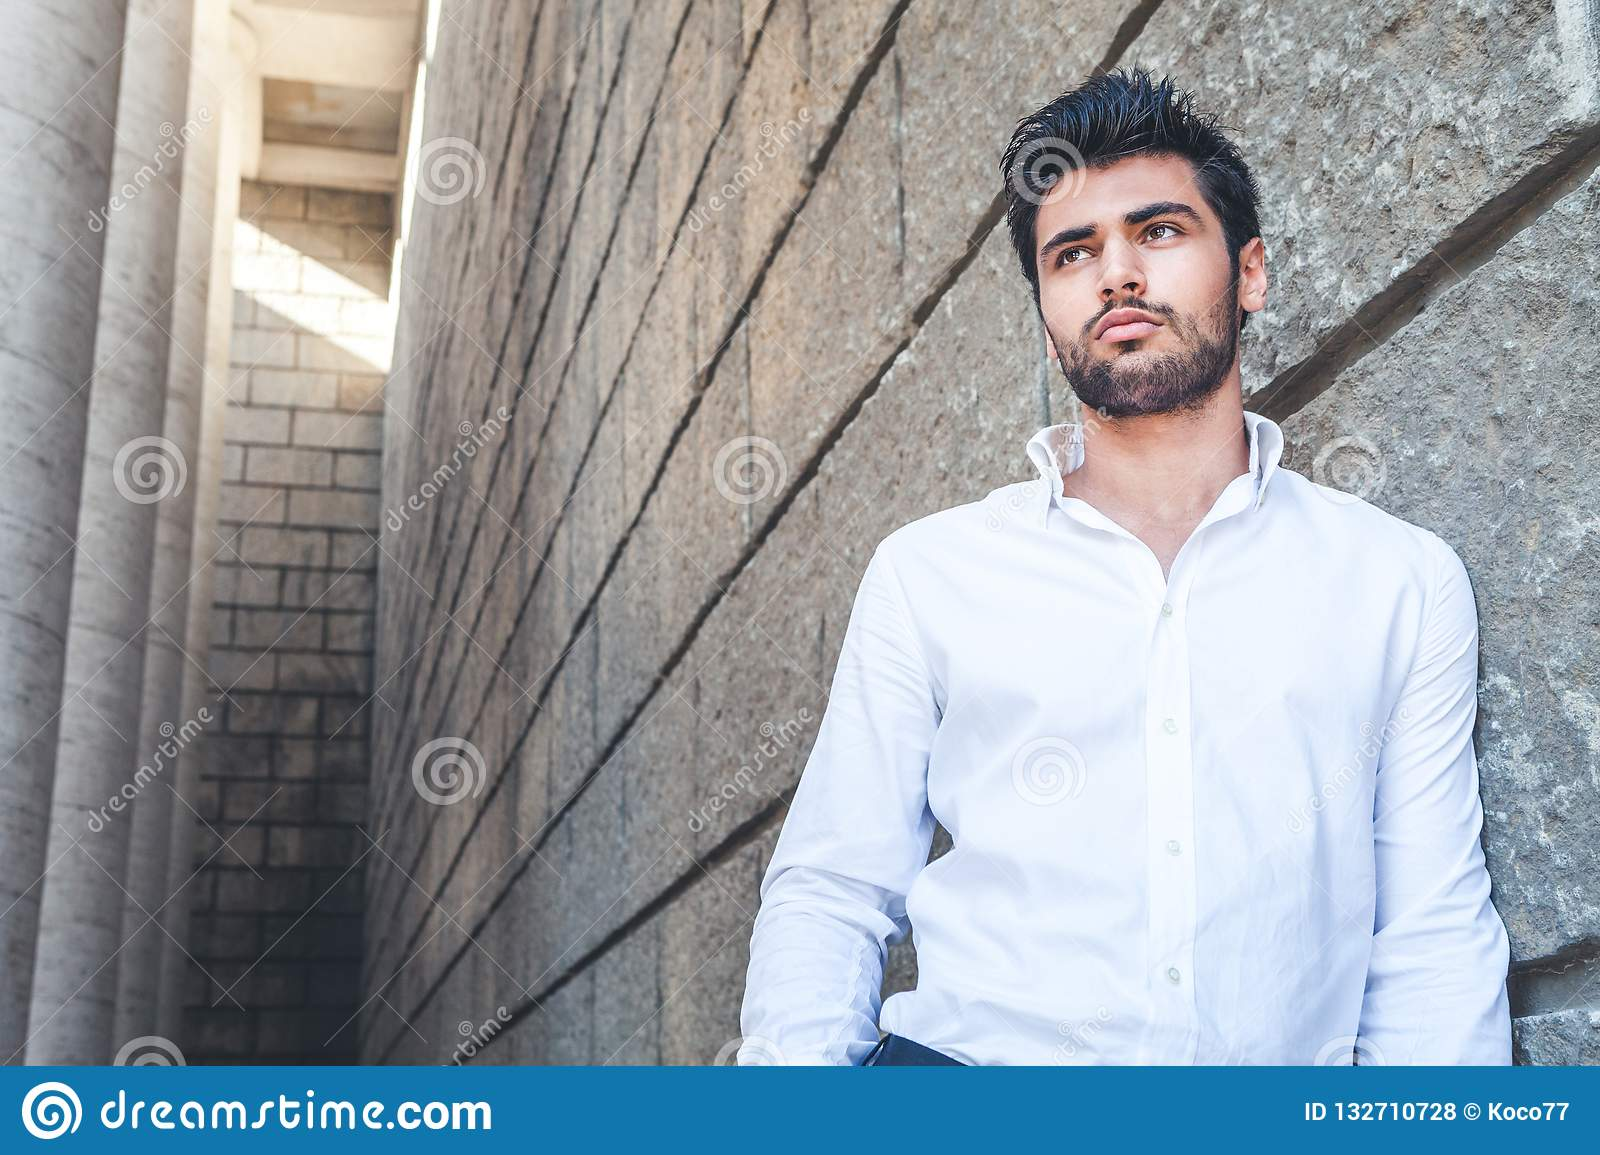 Young man outdoors with free space near. White shirt, fashionable hair and beard.